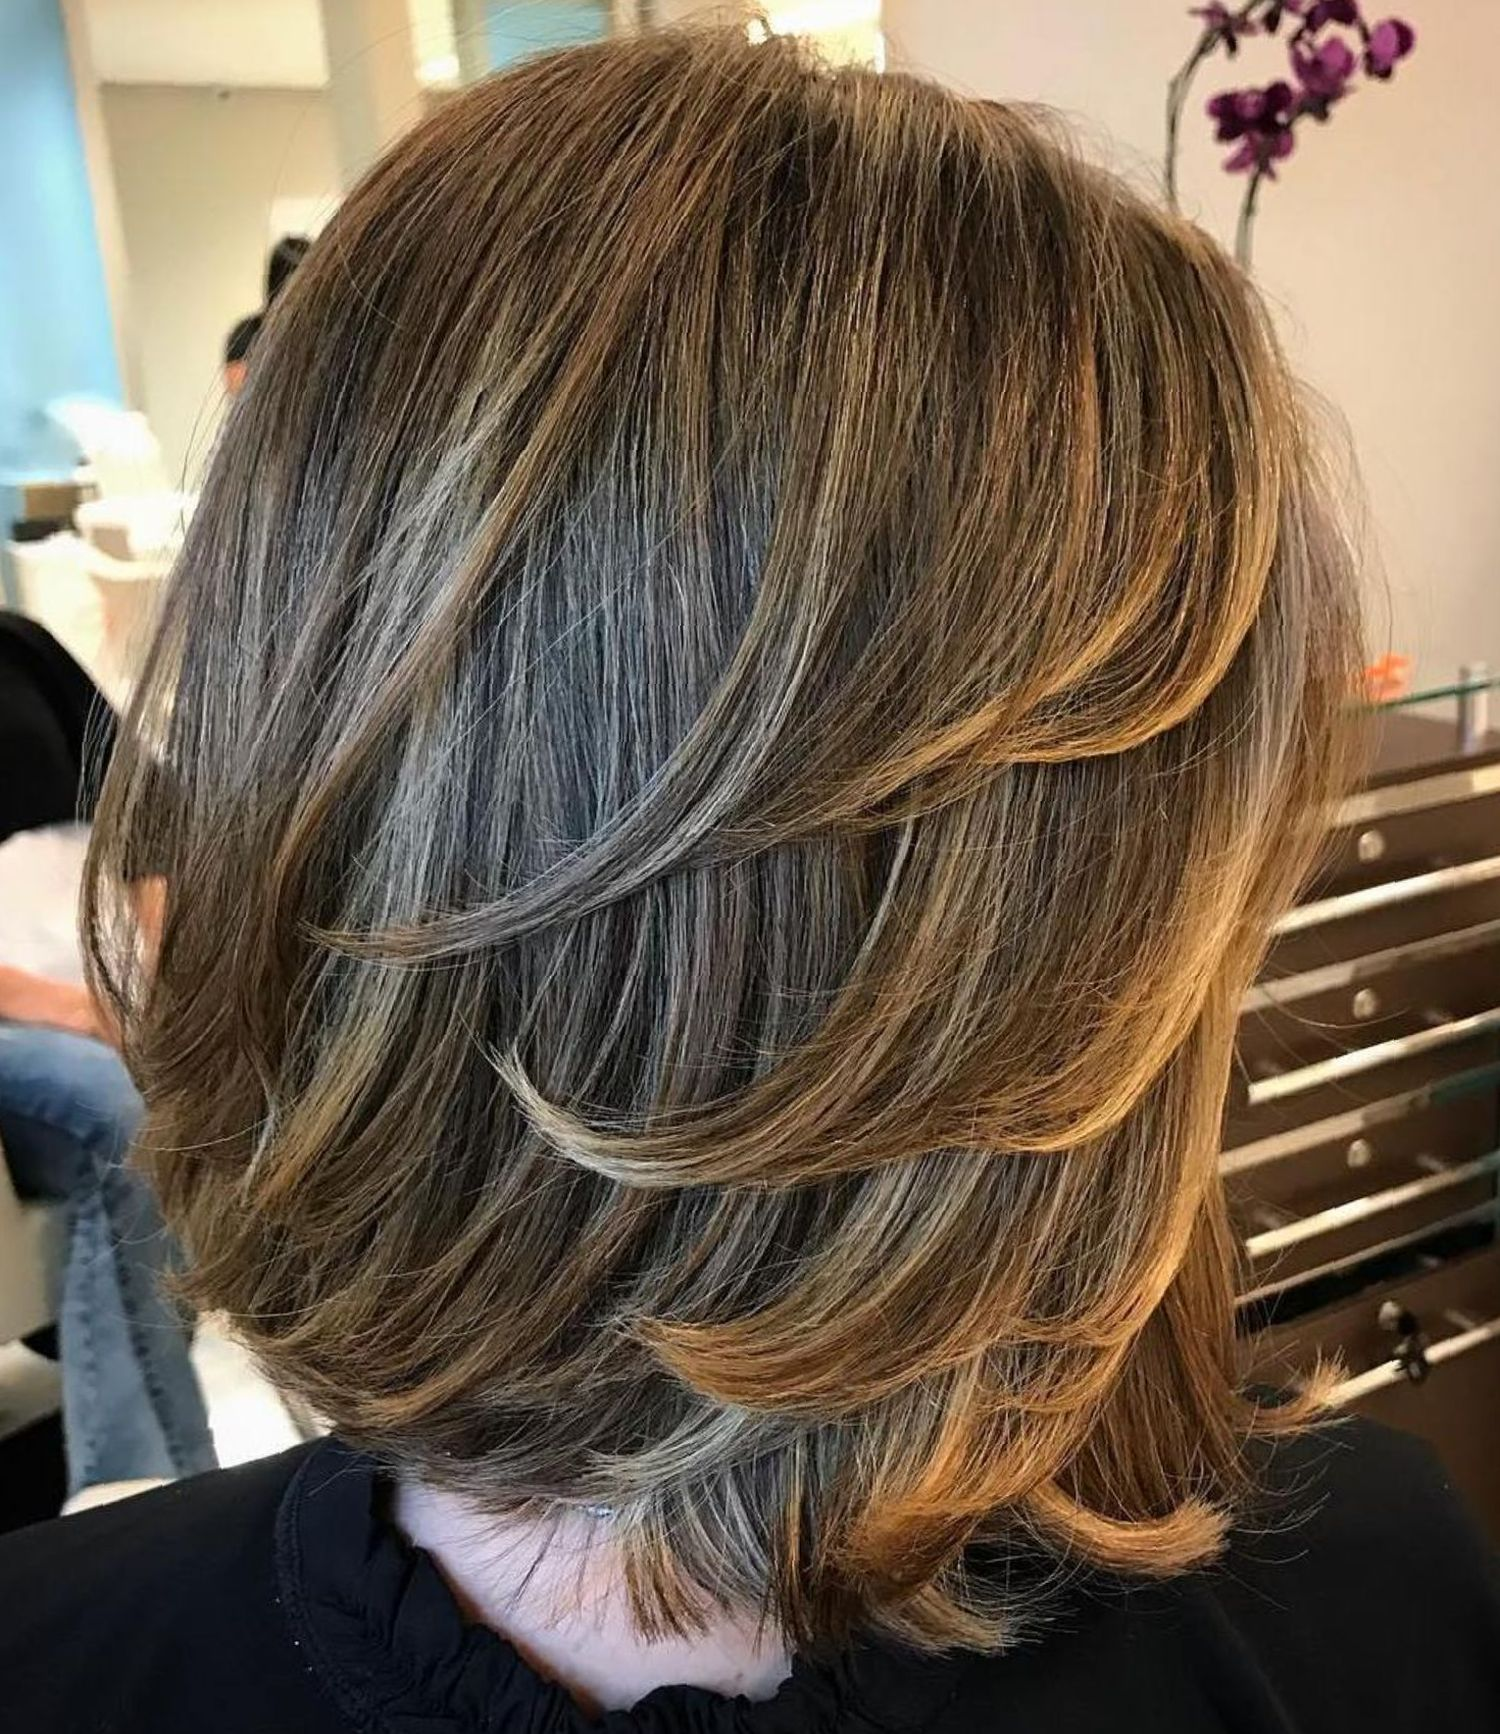 Medium Length Hairstyles for Thick Hair (3) - Nature of Nature